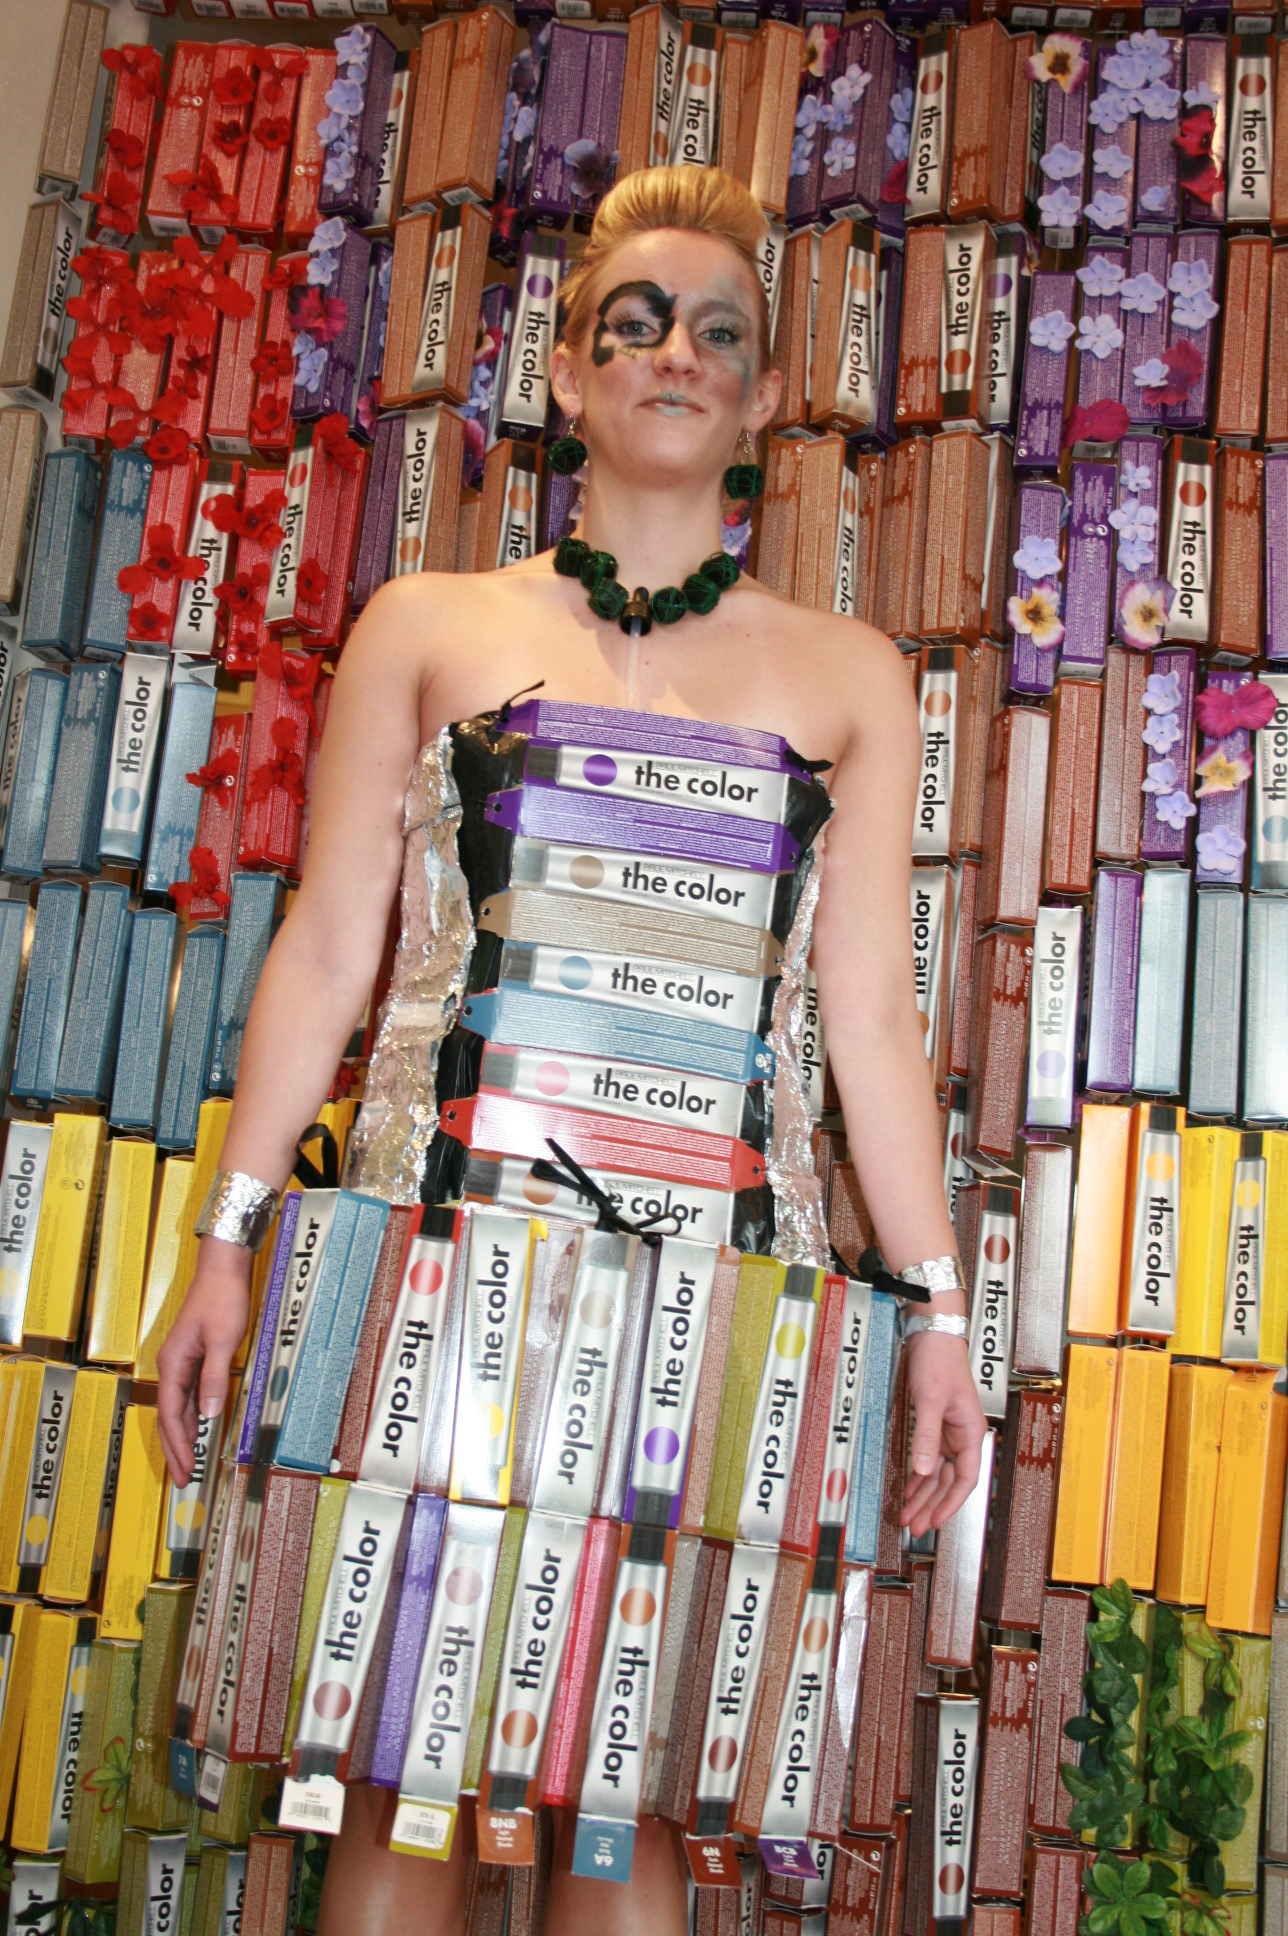 Splish staffer Kristin McSherry goes eco-chic in a dress made from recycled foils and Paul Mitchell color boxes and a necklace created from the tops of color tubes.